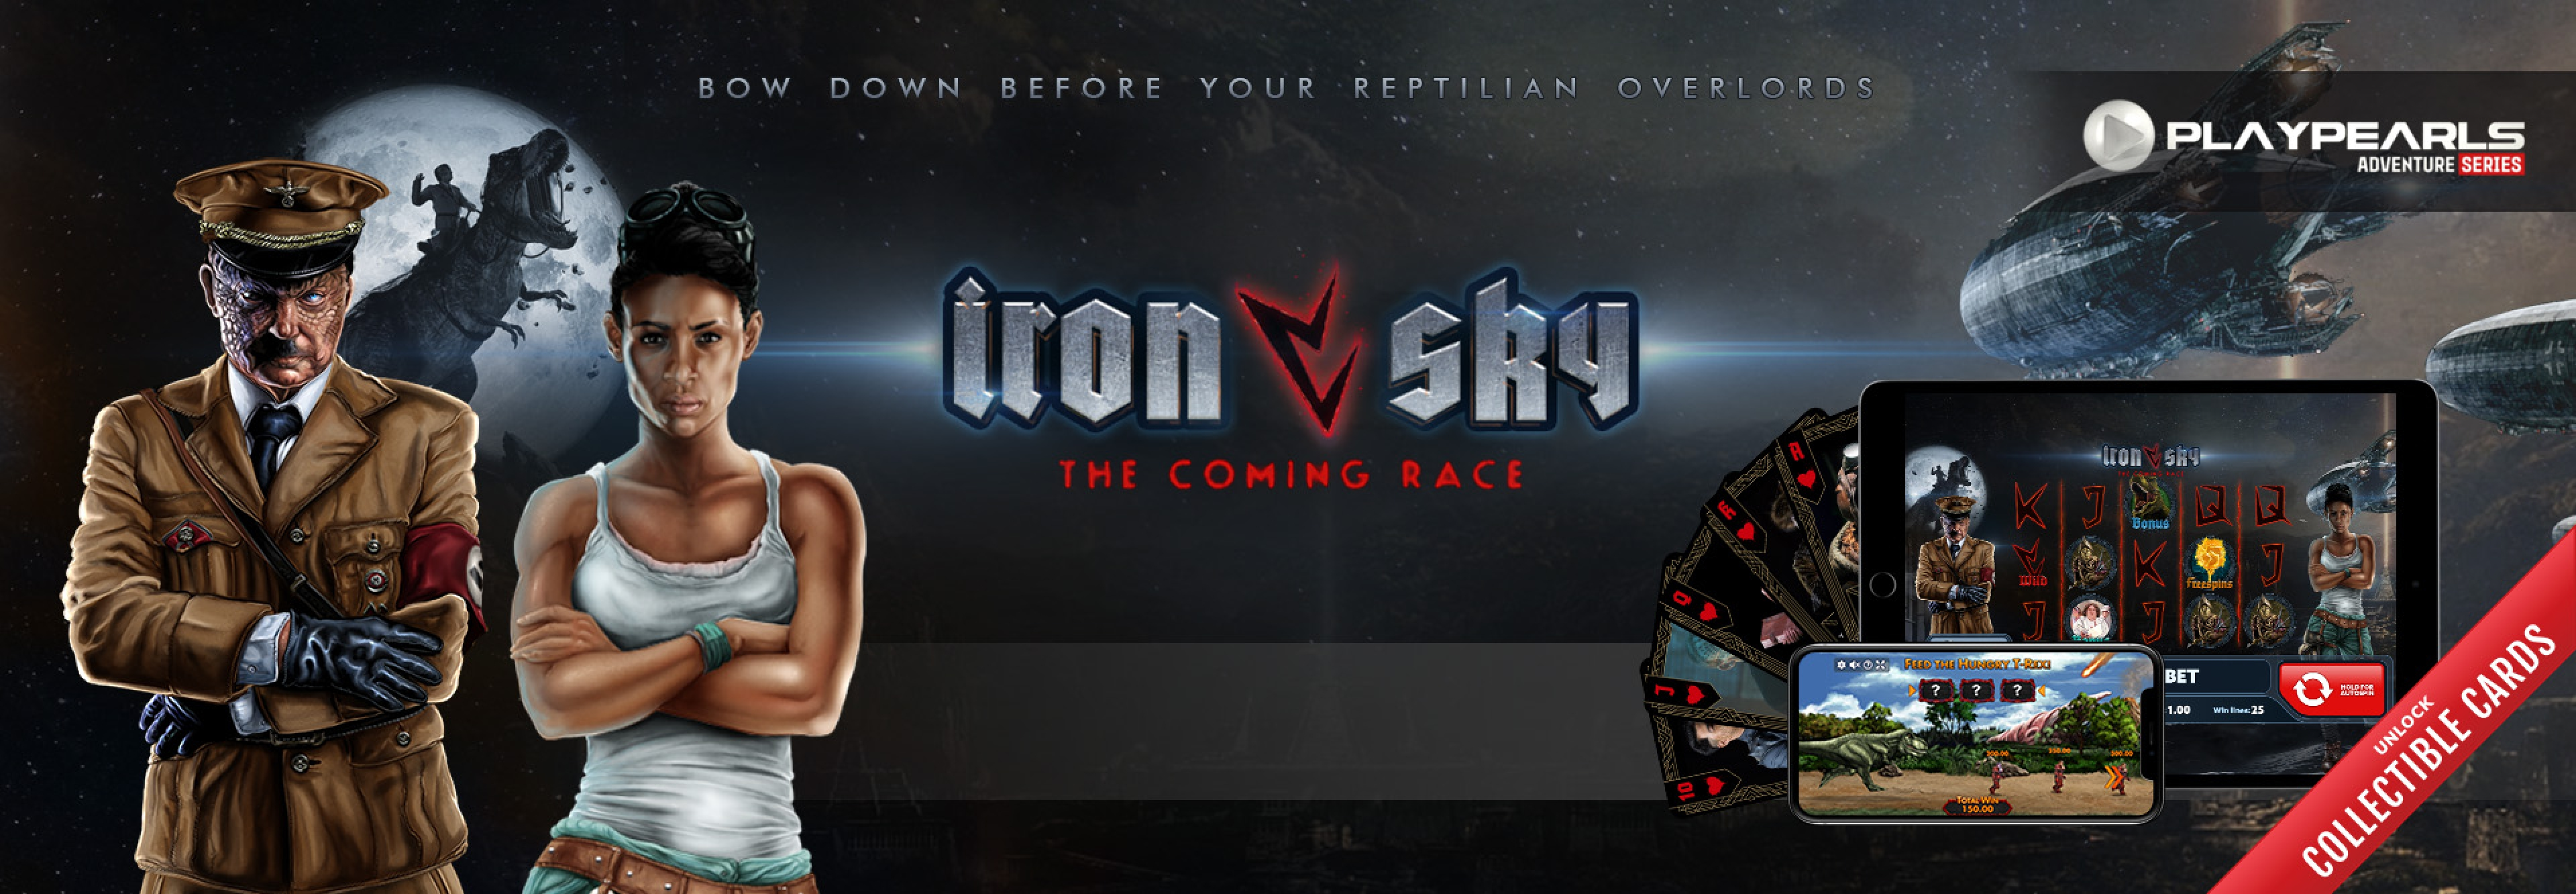 The Iron Sky Online Slot Demo Game by PlayPearls